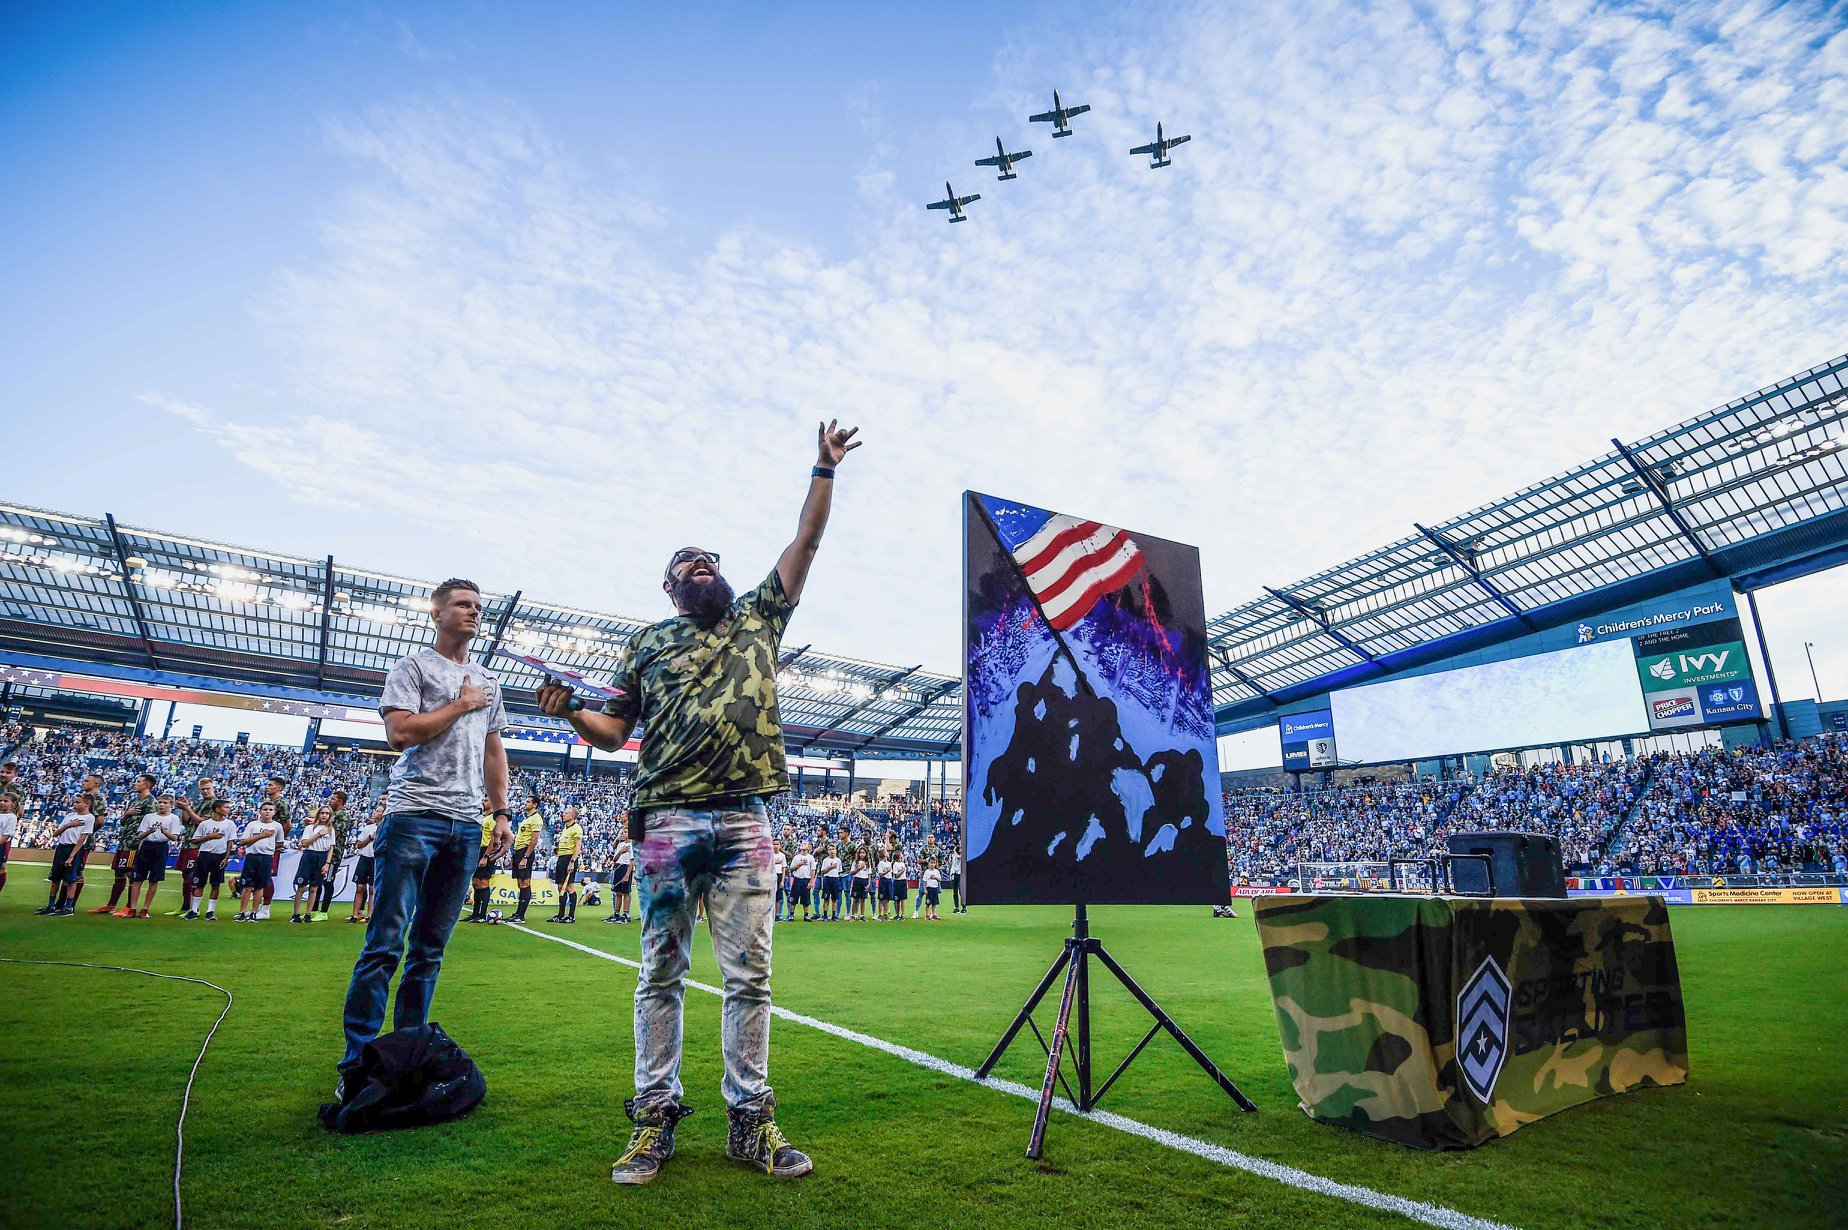 F.I.S.H. at Sporting KC honoring our FISH Aaron Bono with his service dog Max. - F.I.S.H. artist Joe Everson and Everett Callan performed at the match. Note the A-10's overhead.